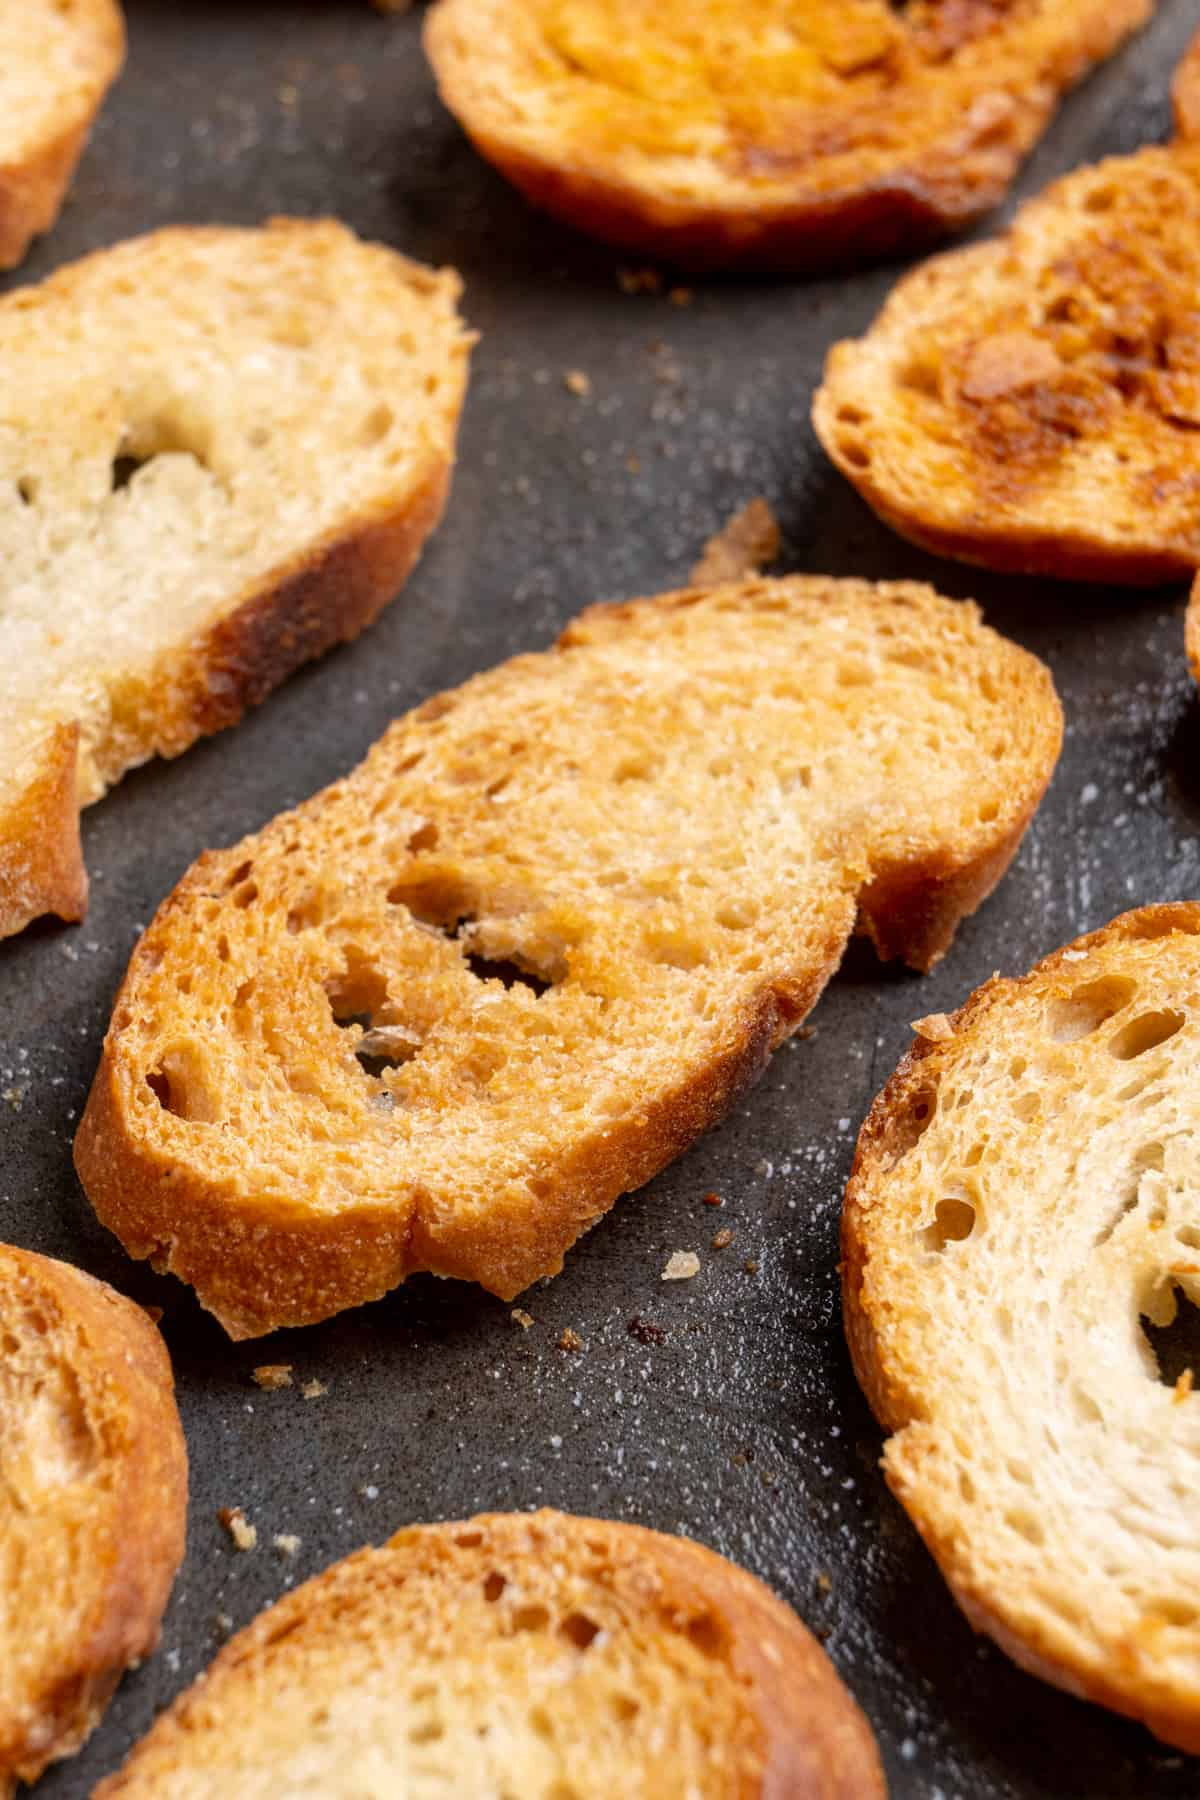 A close up image of crostini. The slices of bread have been baked until golden brown and very crispy.